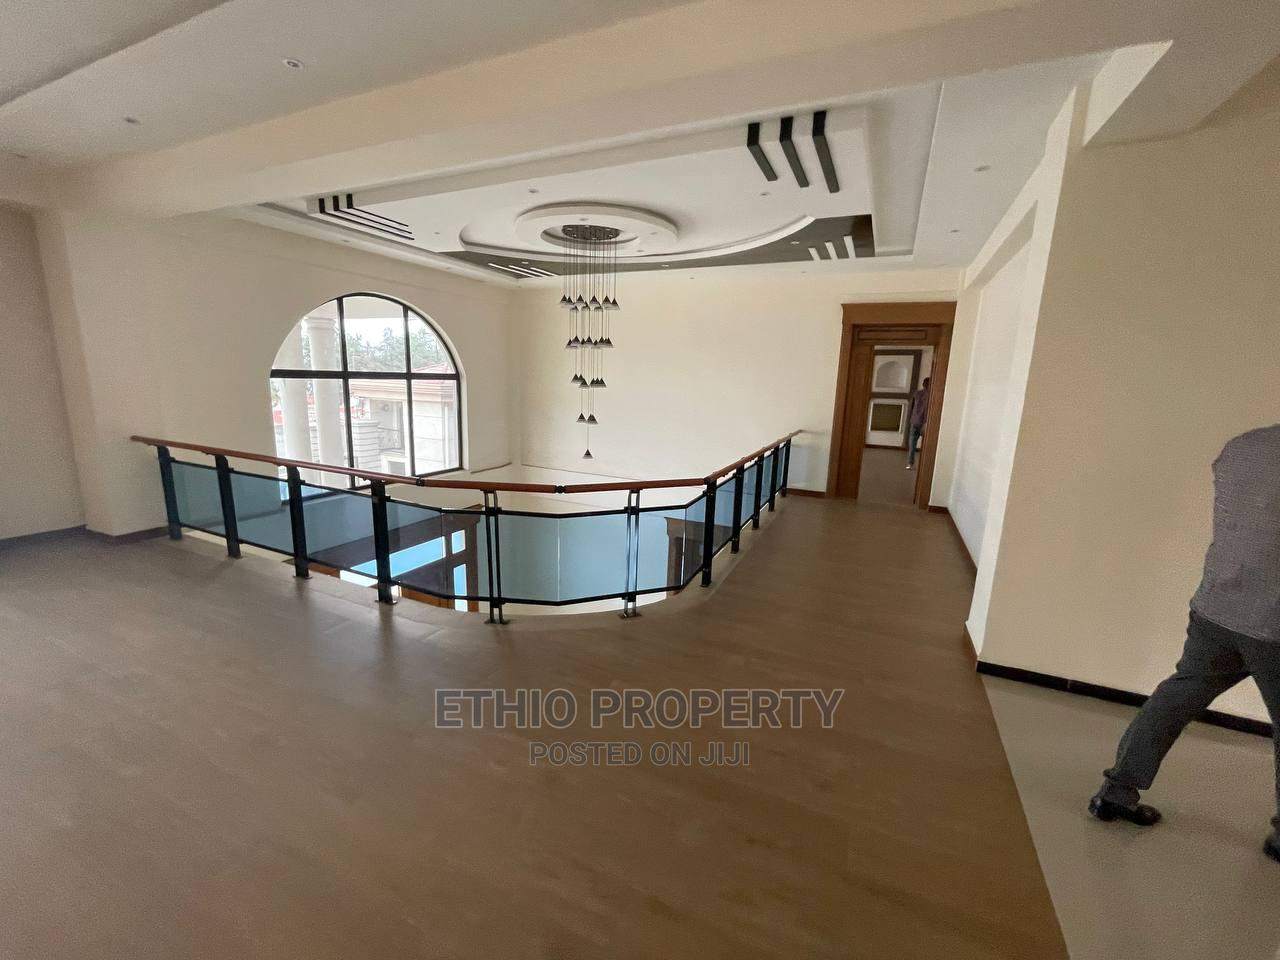 8bdrm House in ቦሌ, Bole for Sale